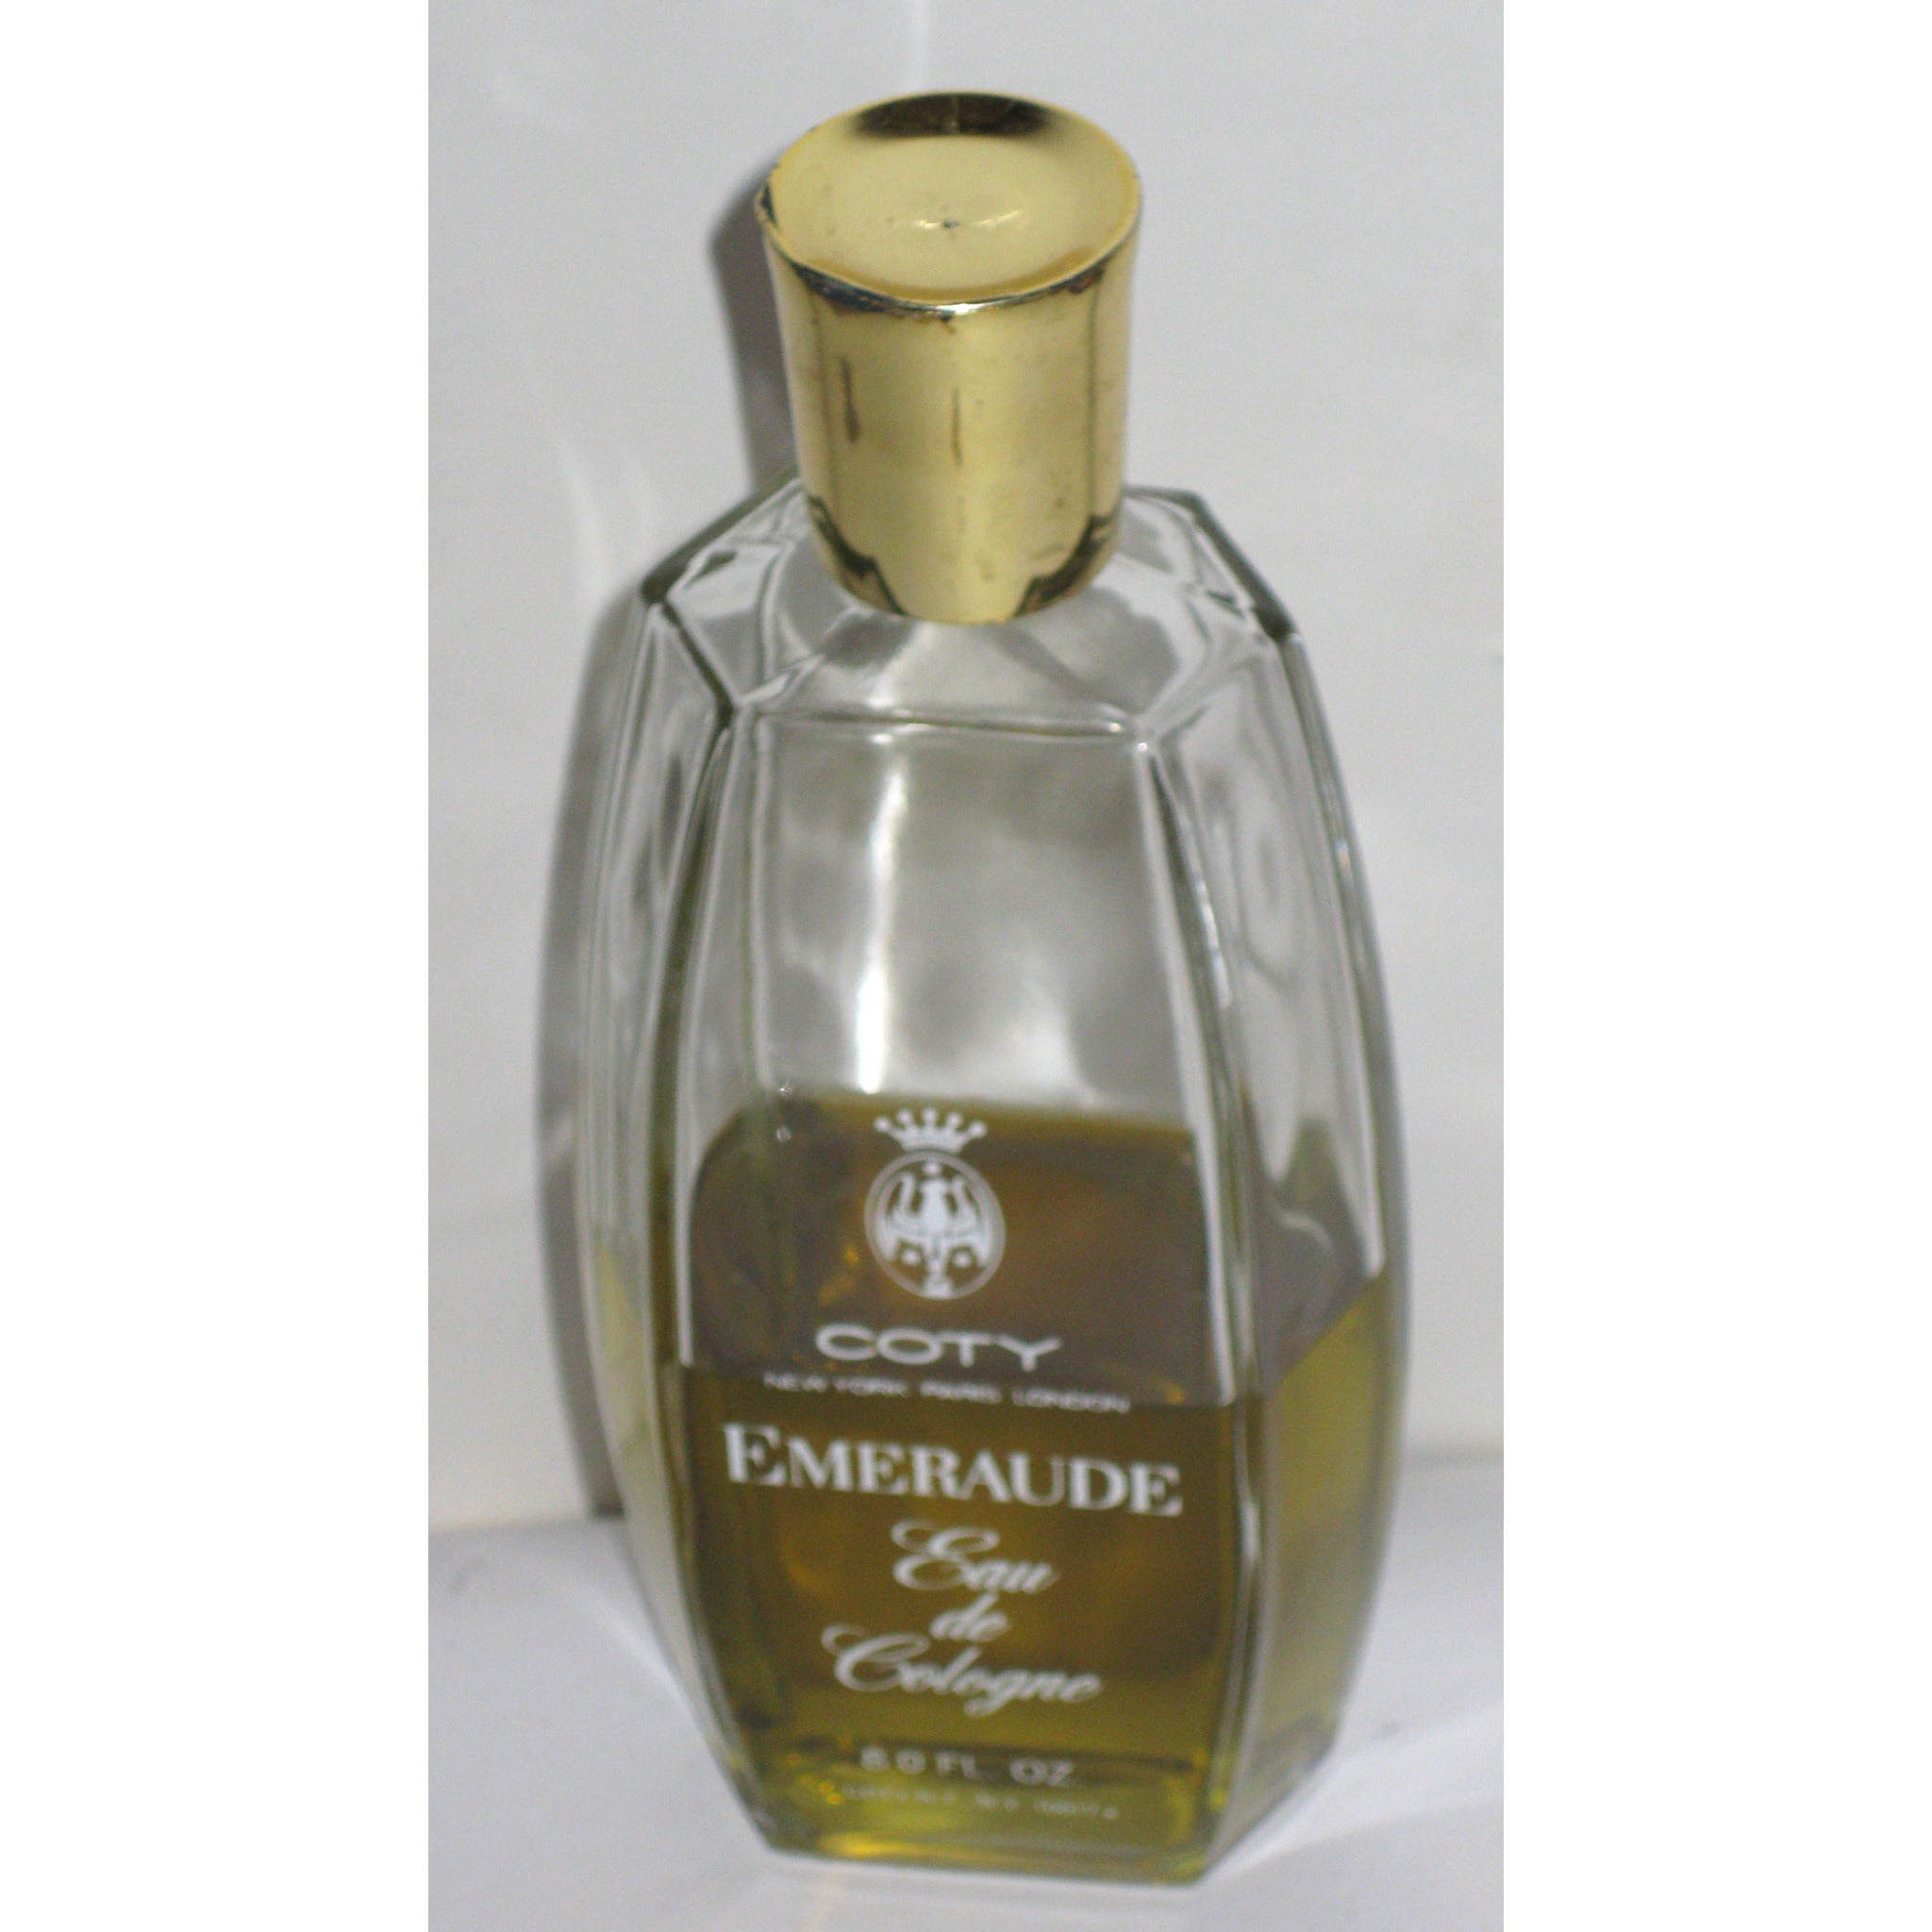 Vintage Emeraude Eau De Cologne By Coty